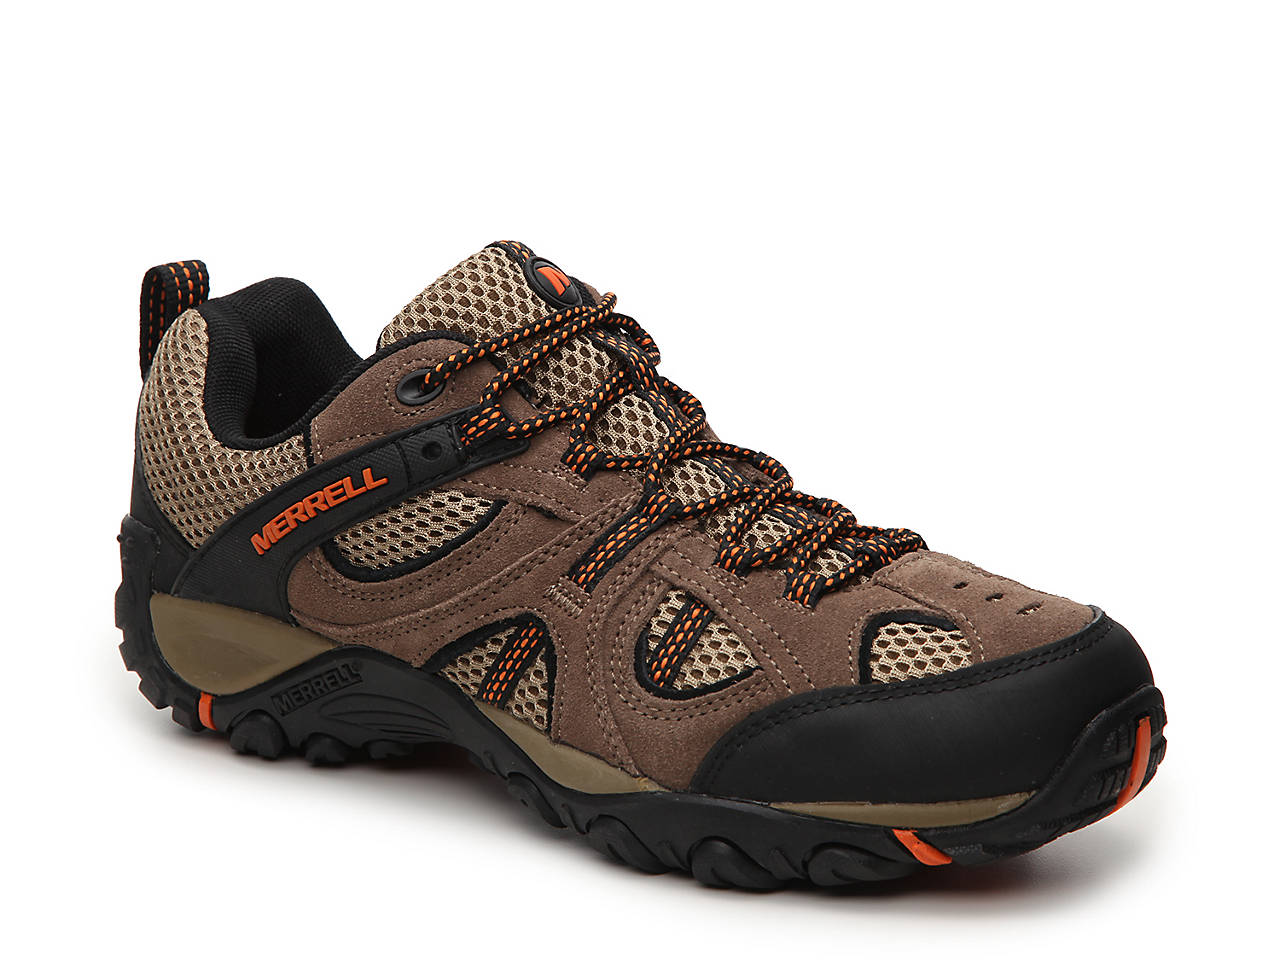 Merrell Yokota Trail Sneaker Pay With Paypal Cheap Online Supply Sale Online Best Store To Get Very Cheap Online jNcLfbL4